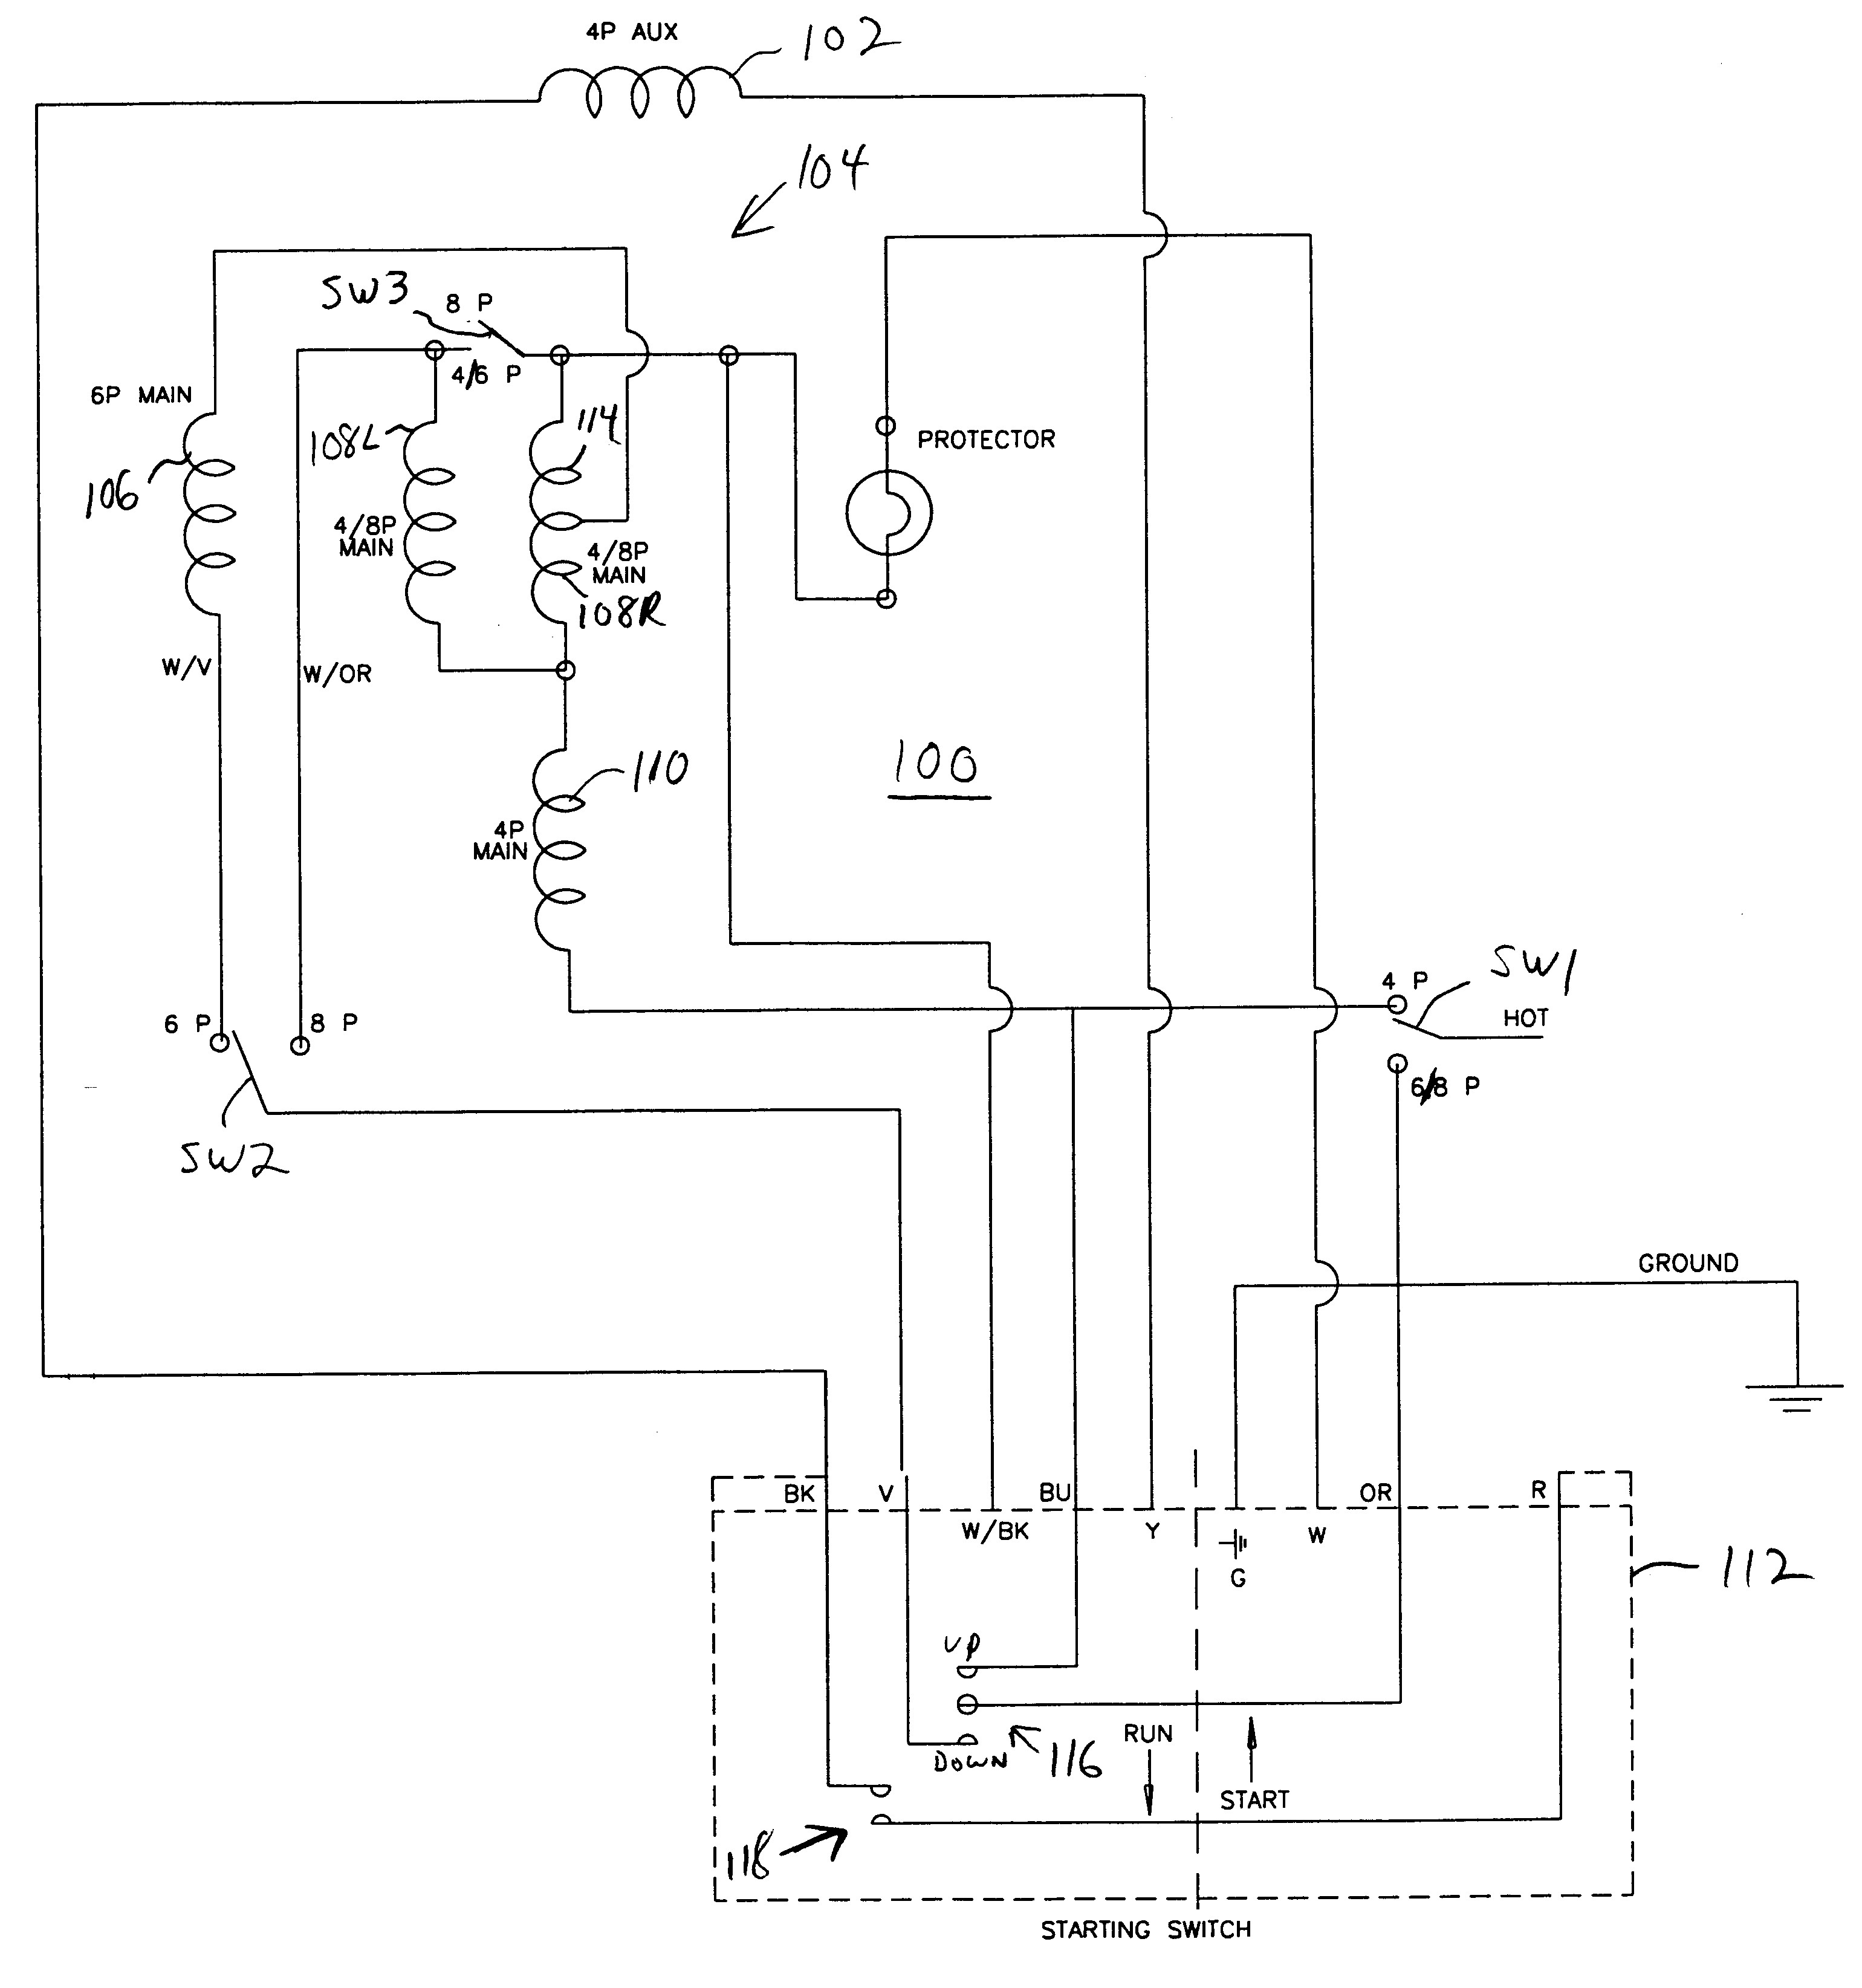 electric motor capacitor wiring diagram Download-Wiring Diagram for Electric Motor with Capacitor Best Patent Us Capacitor Start Single Phase Induction Motor 10-o